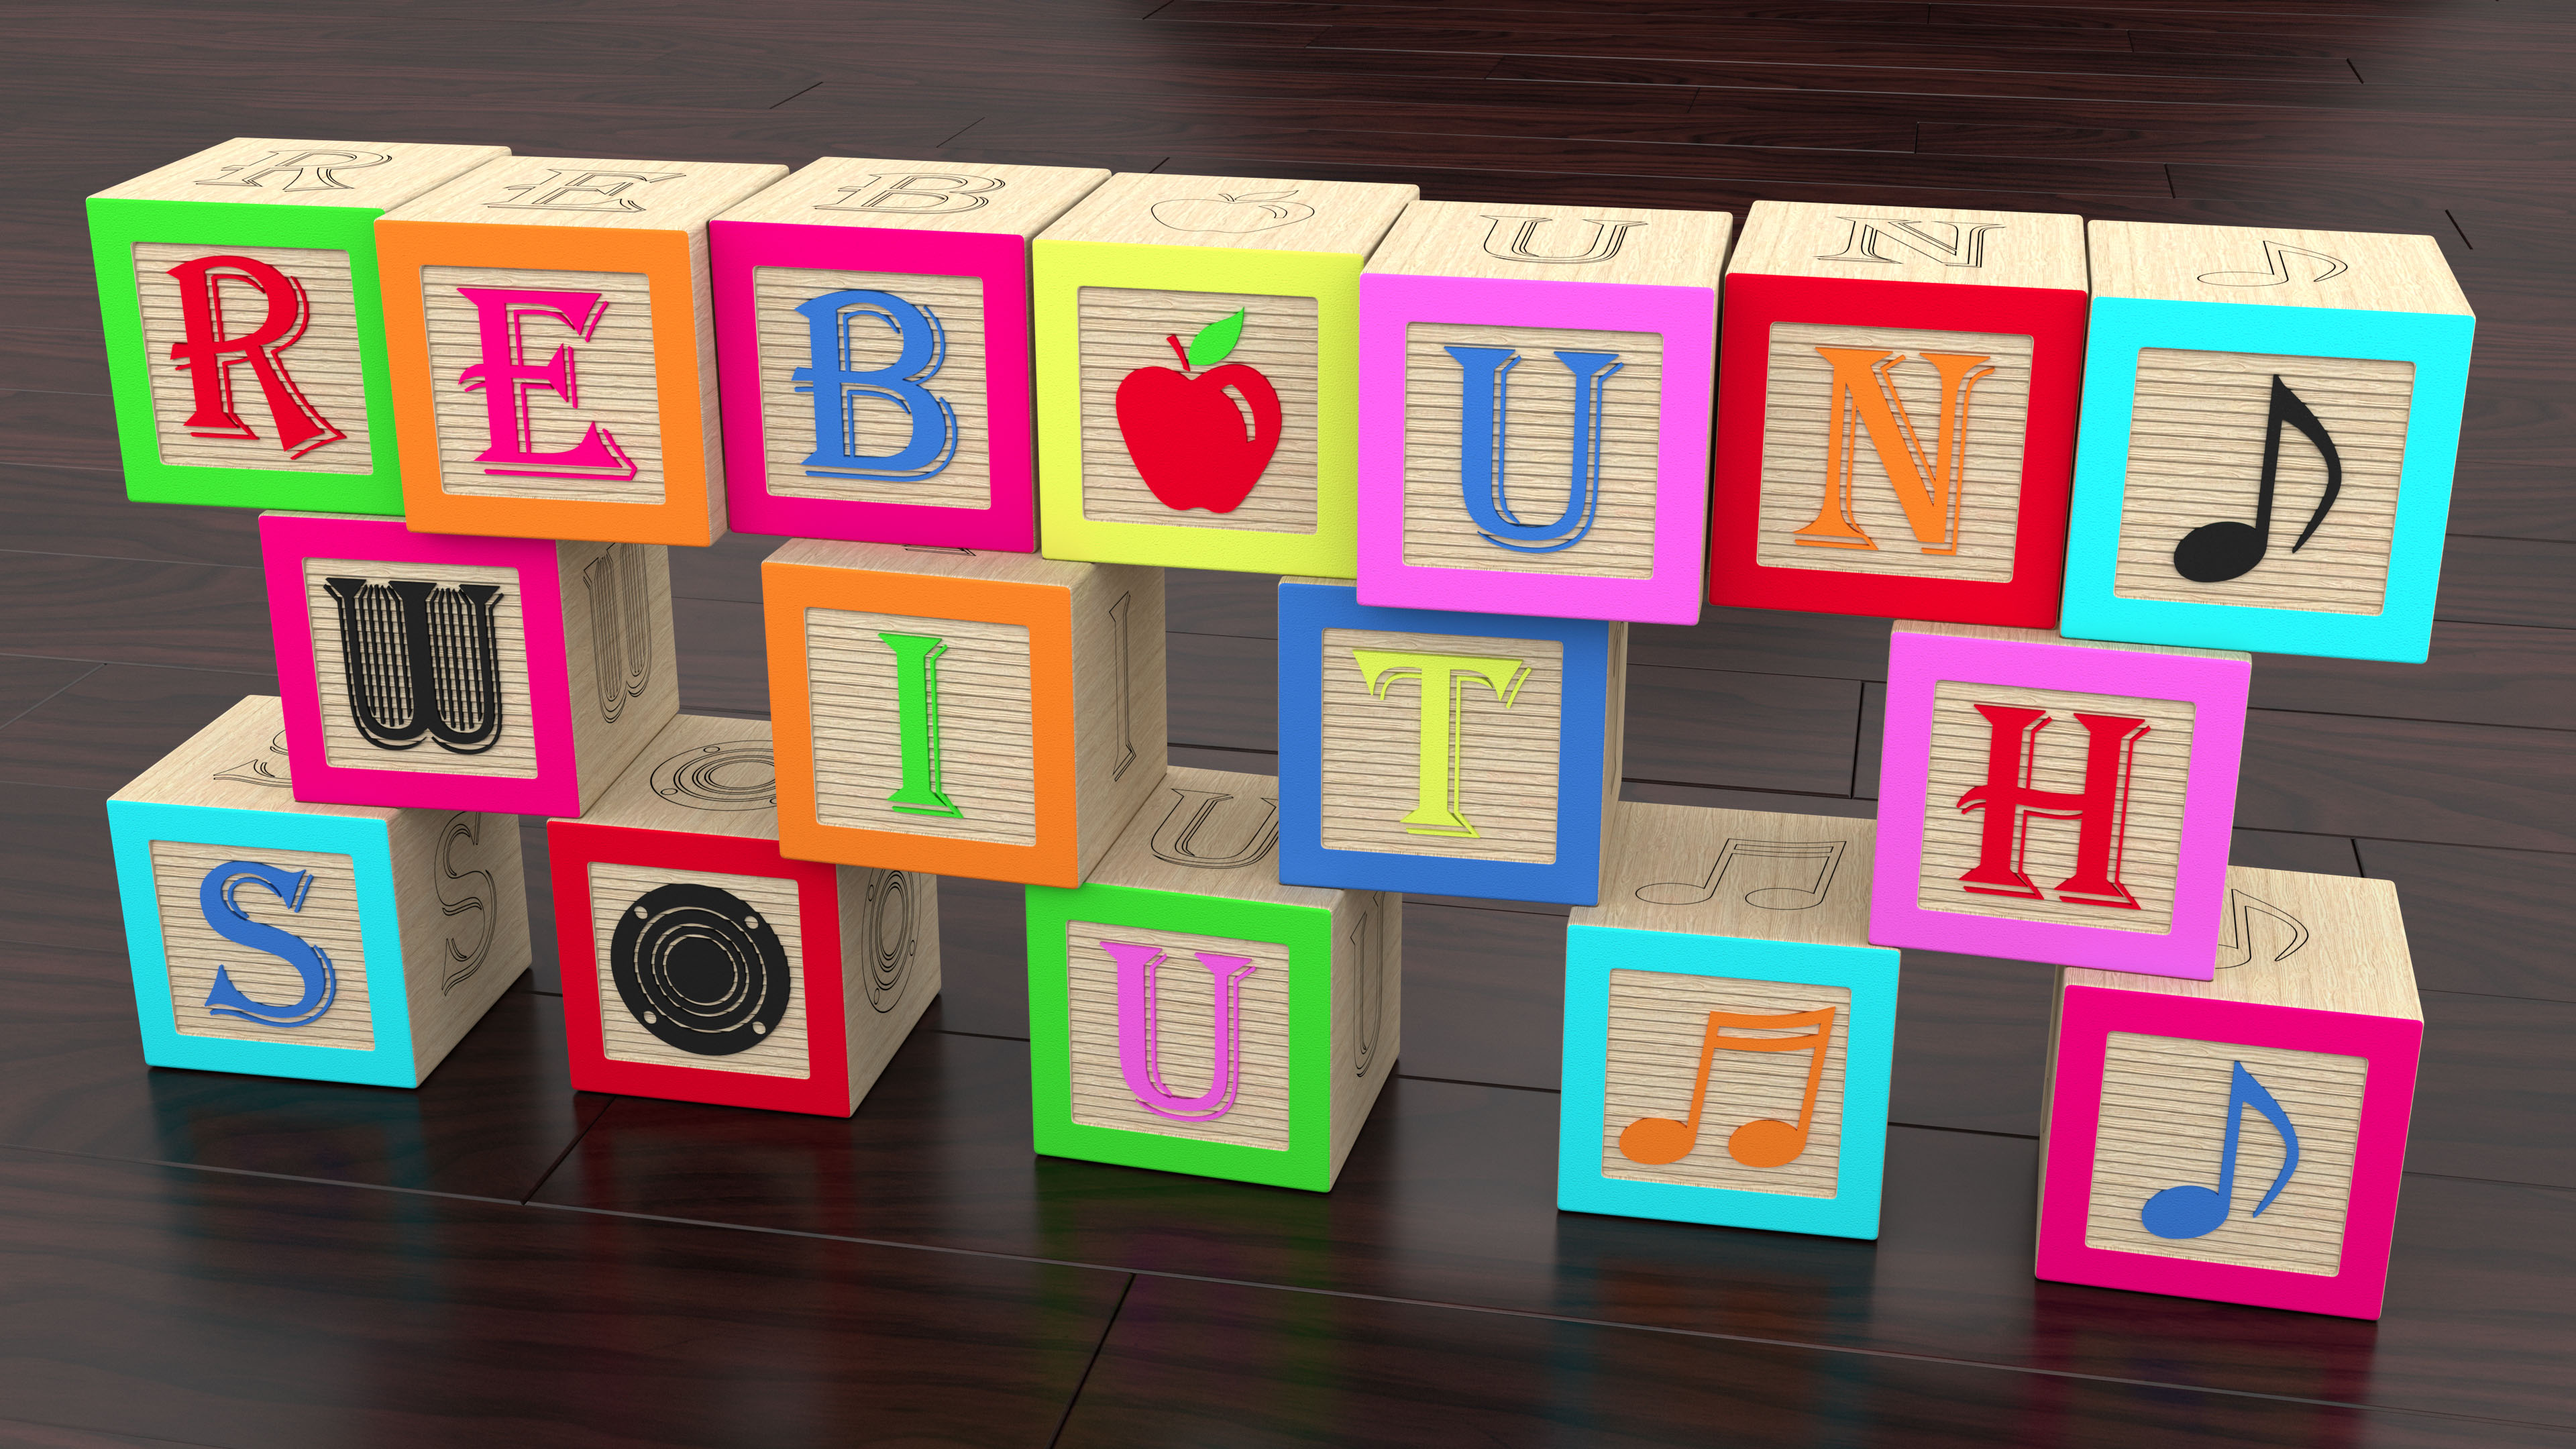 Rebound with Sound logo spelled with kids building toy blocks